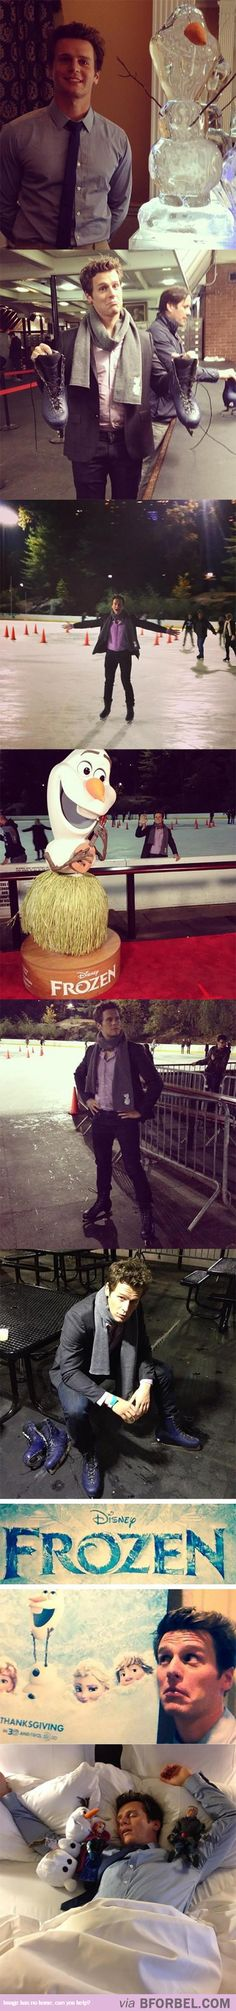 "Jonathan Groff (Voice Of Kristoff) Loves ""Frozen"" more than anyone ever"